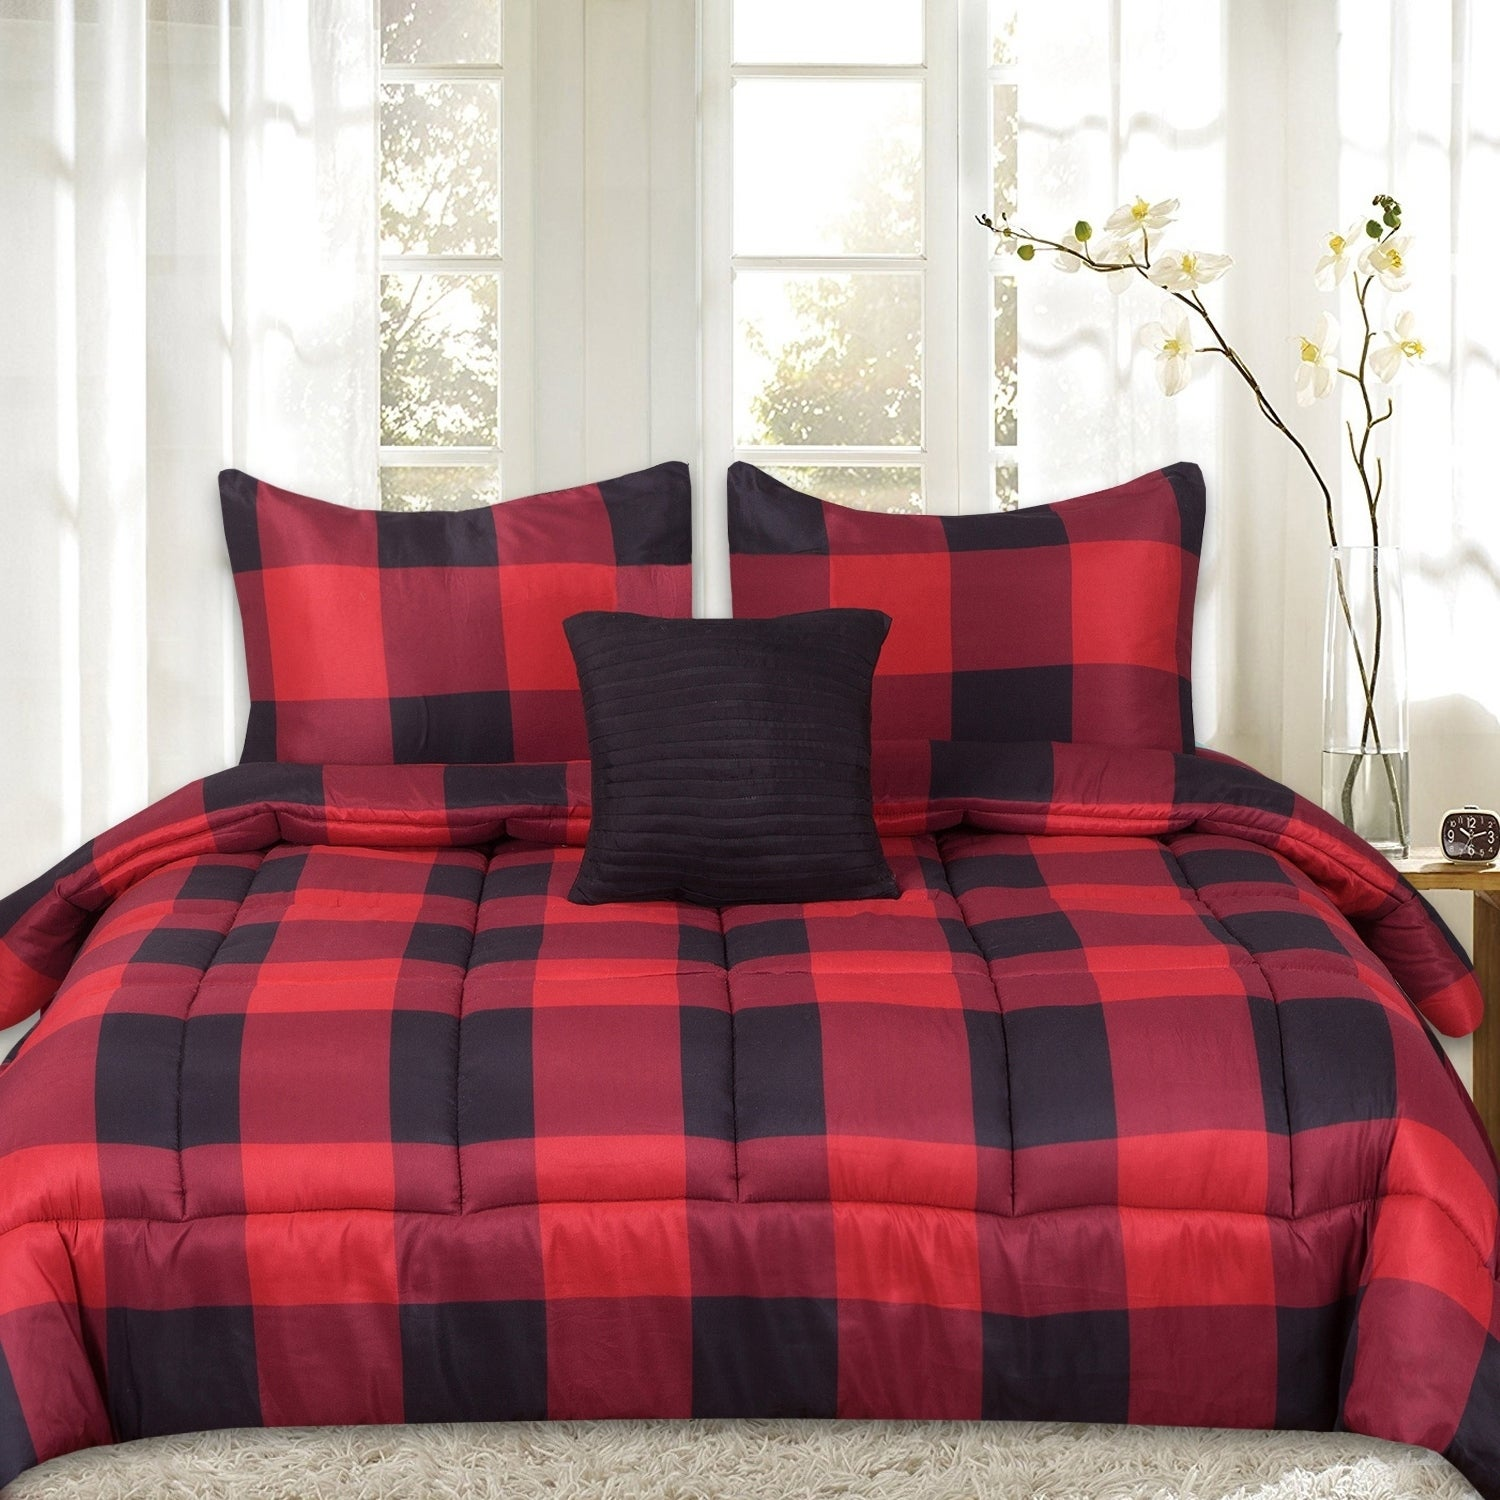 pink sets duvet christmas covers bed a of size check buffalo in bedding set plaid red queen checkered contemporary and blue comforter bag black green white full